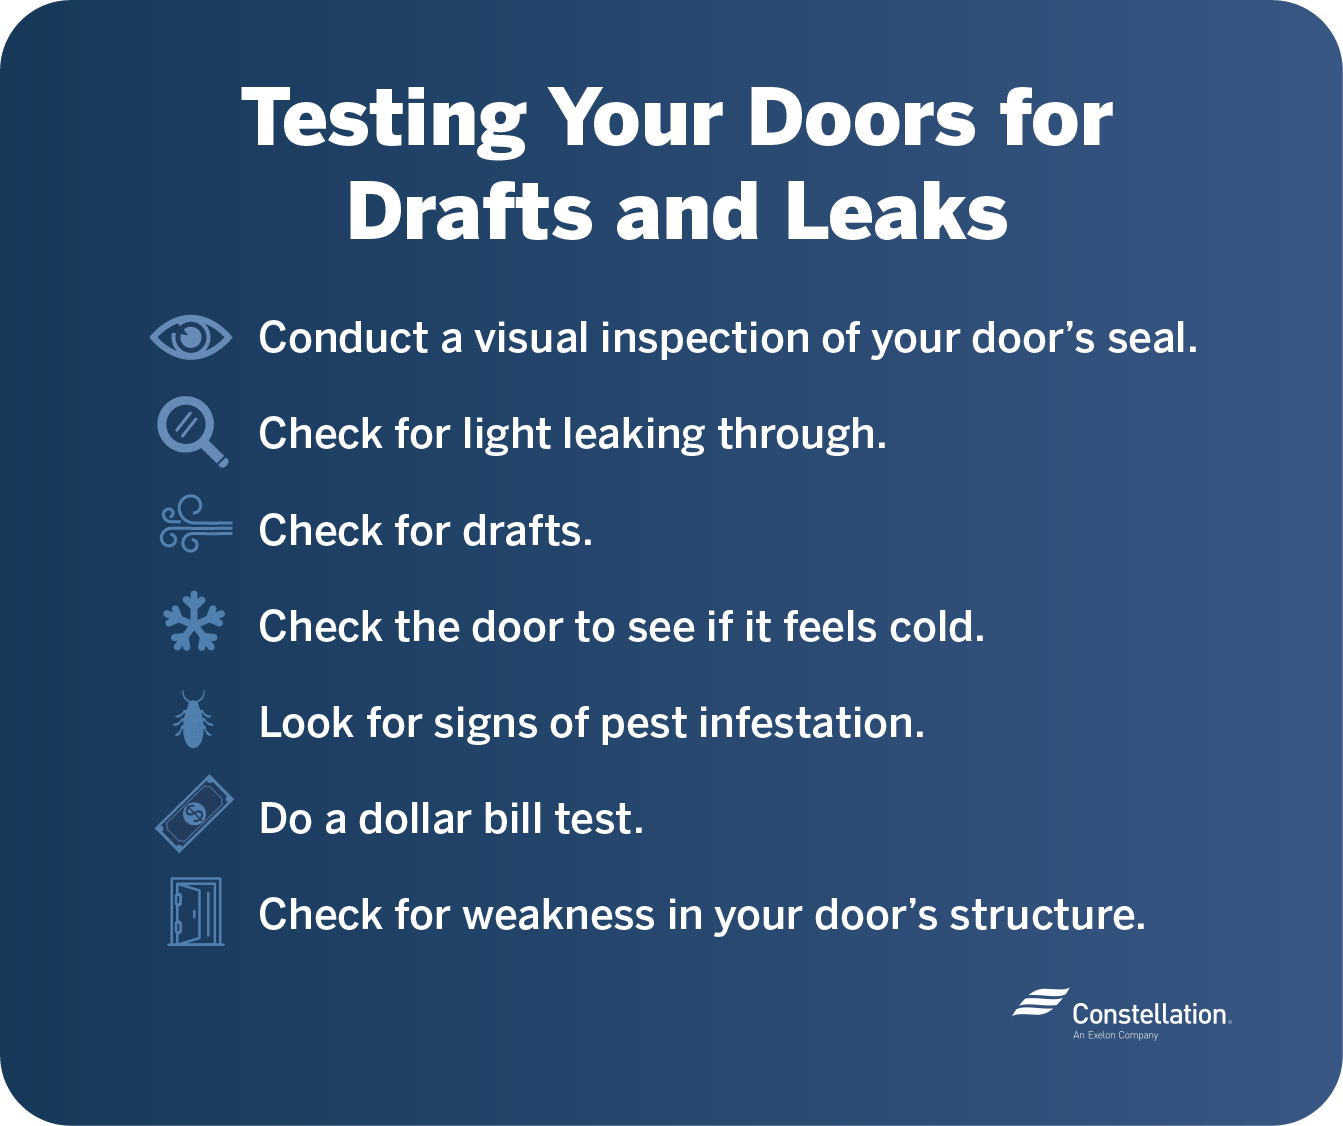 Testing your doors for drafts and leaks